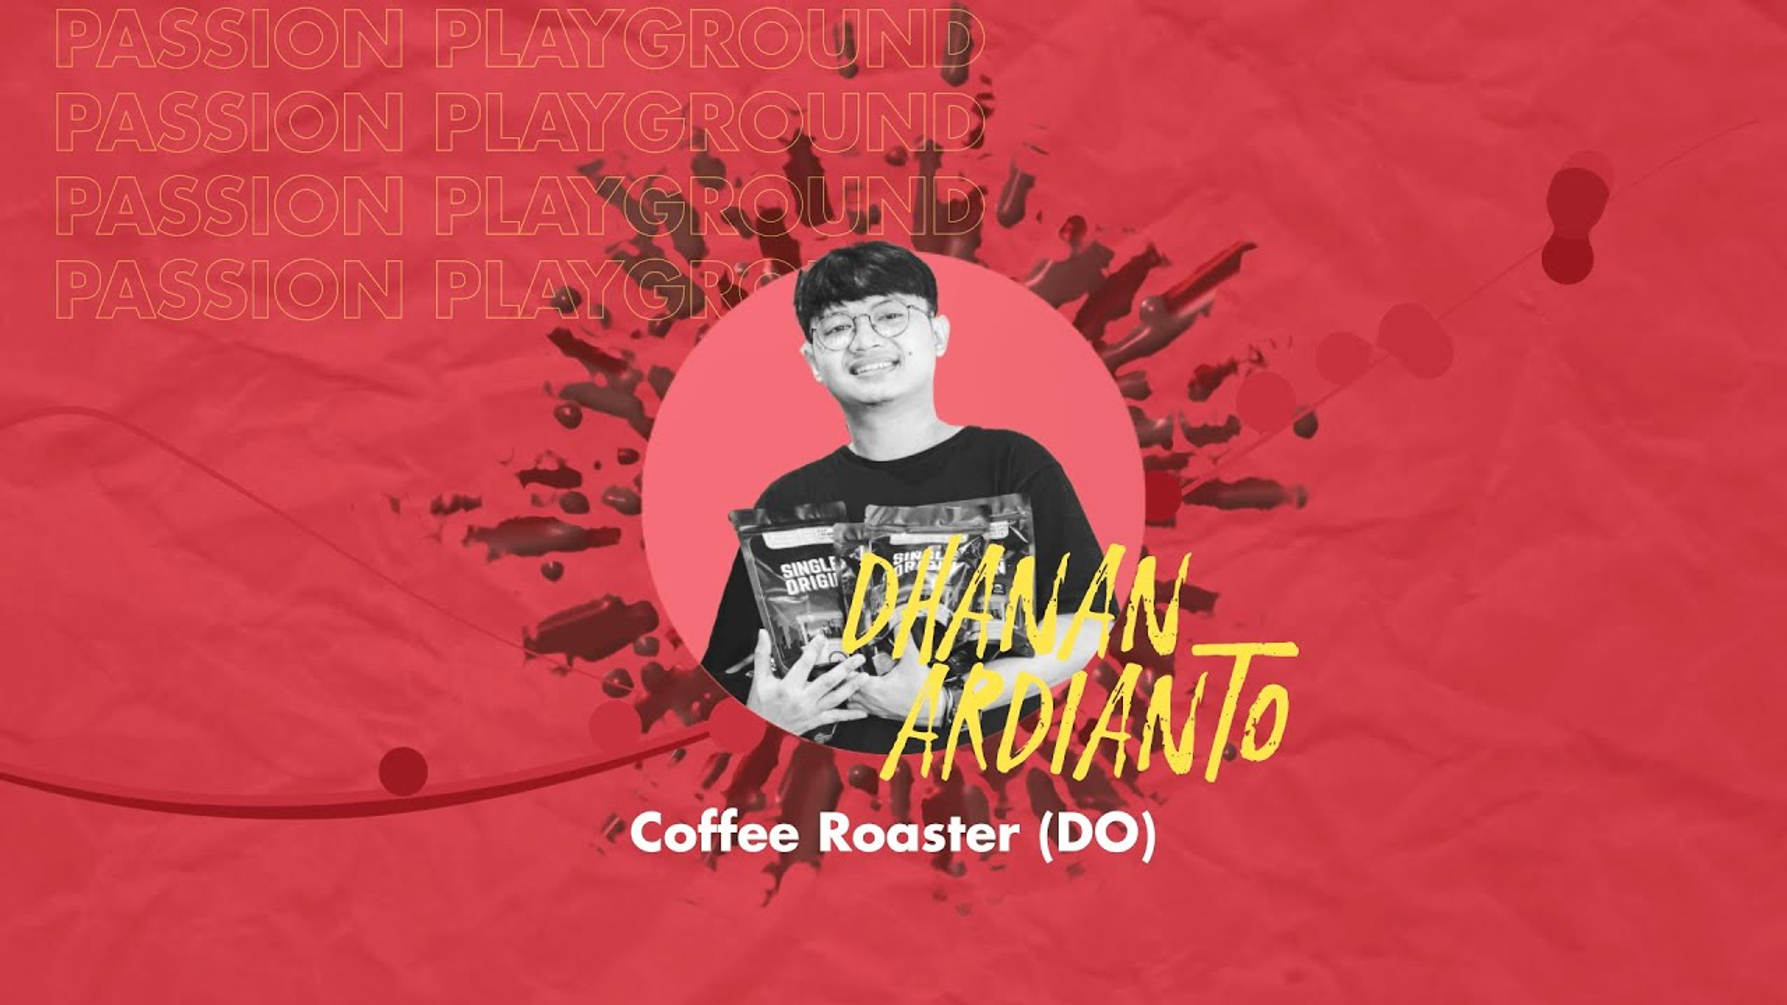 Playroom The Doers - Coffee Roaster (DO) with Dhanan Ardianto